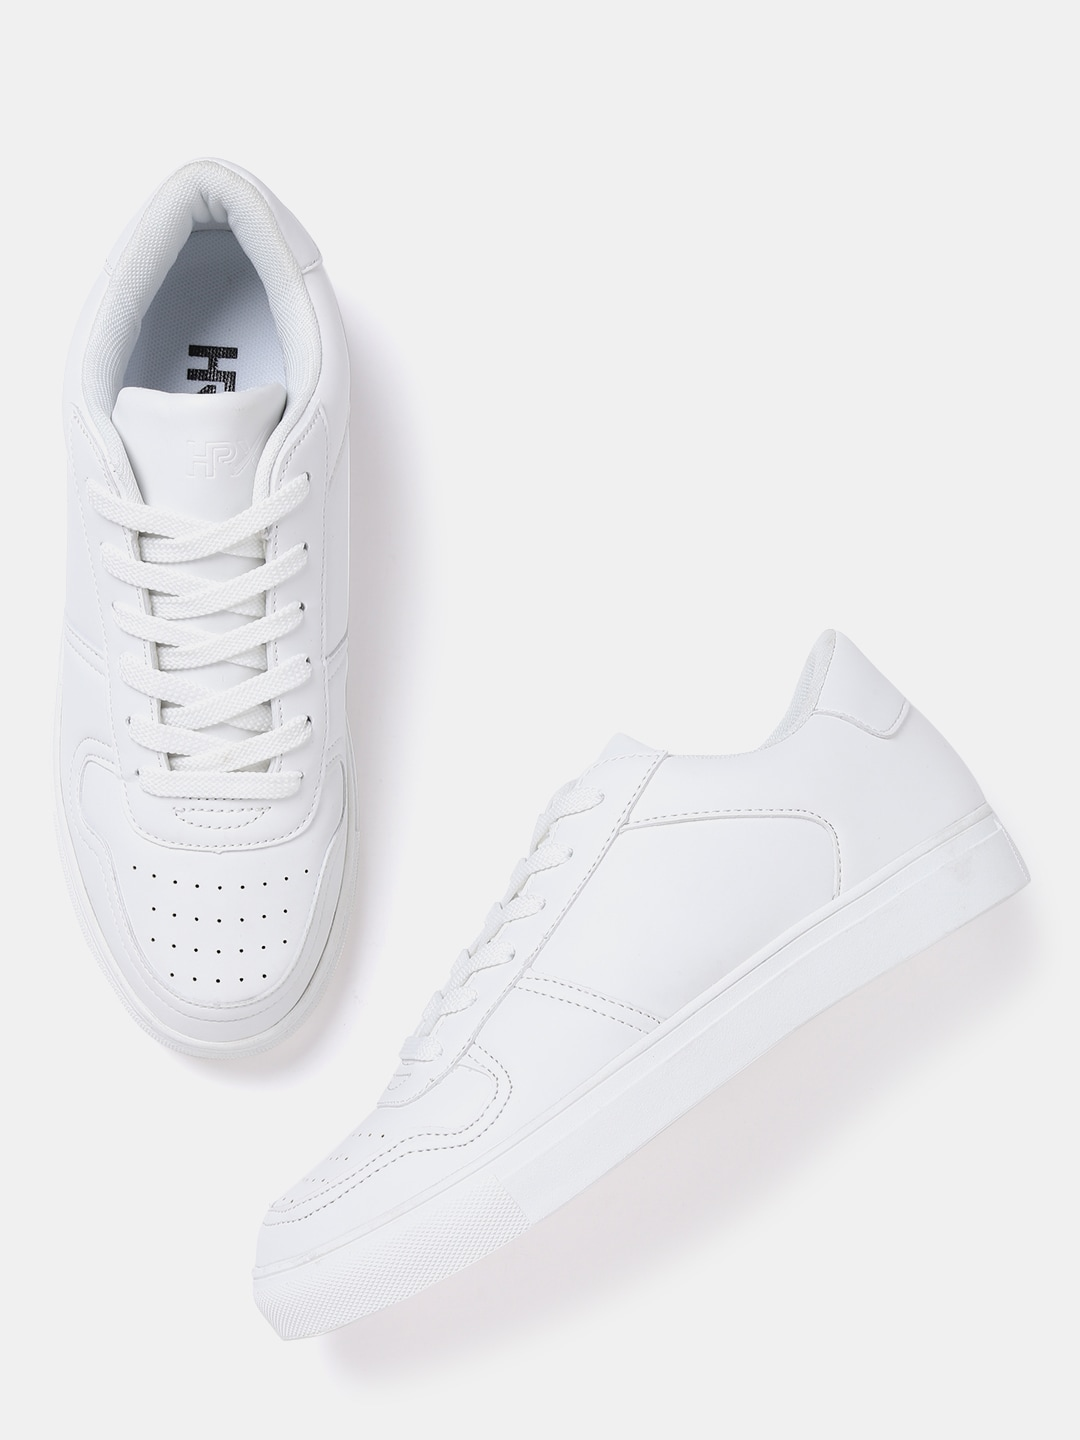 hrx white casual shoes,www